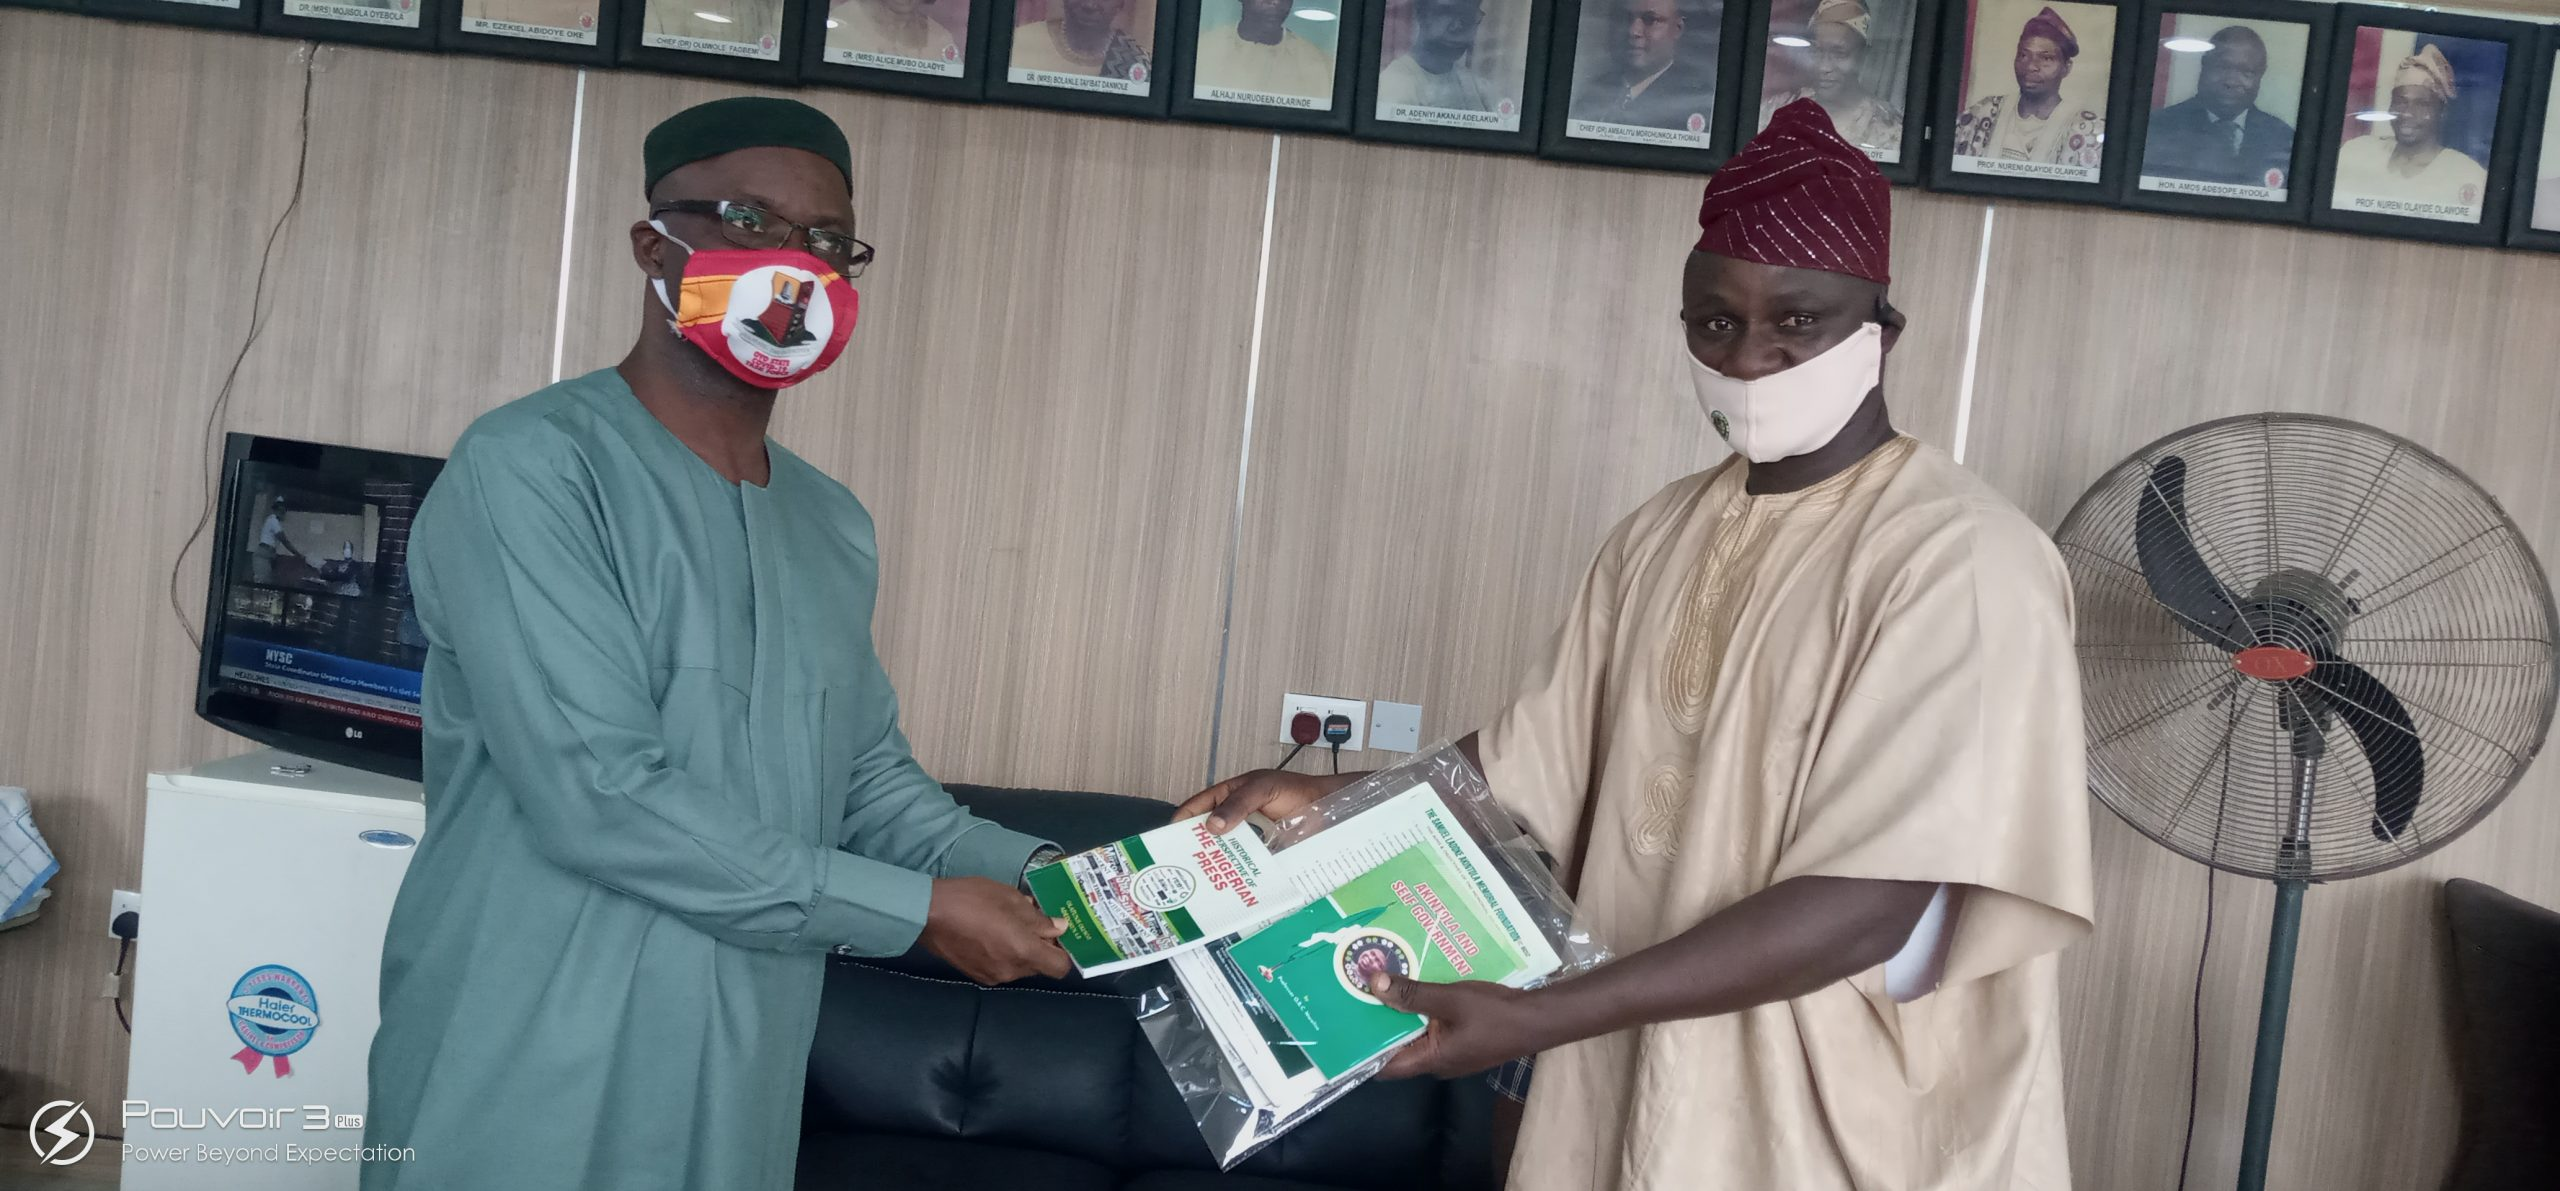 Barr Sunkami Olaleye, Oyo state commissioner for Education Science and Technology   Receiving souvenirs presented by Mr Yemi Adedokun cordinator Ladoke Akintola Foundation